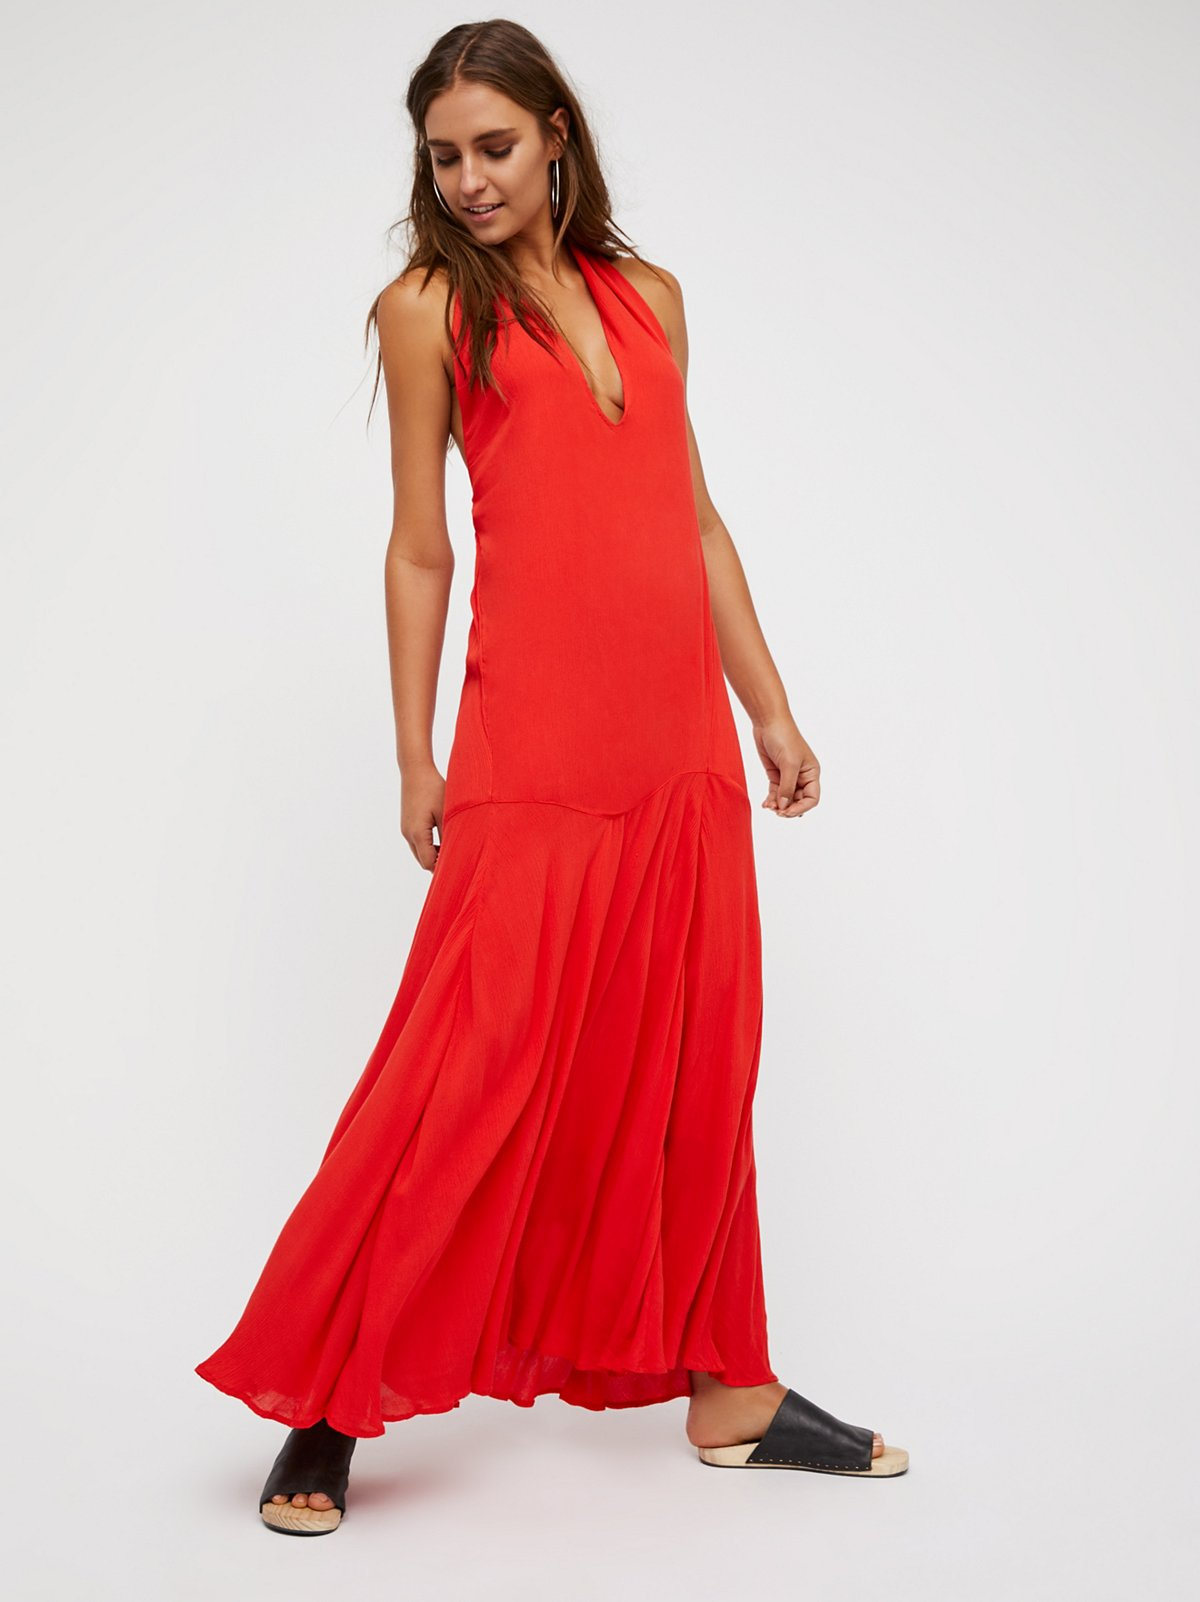 A New Kind Of Love Maxi Dress